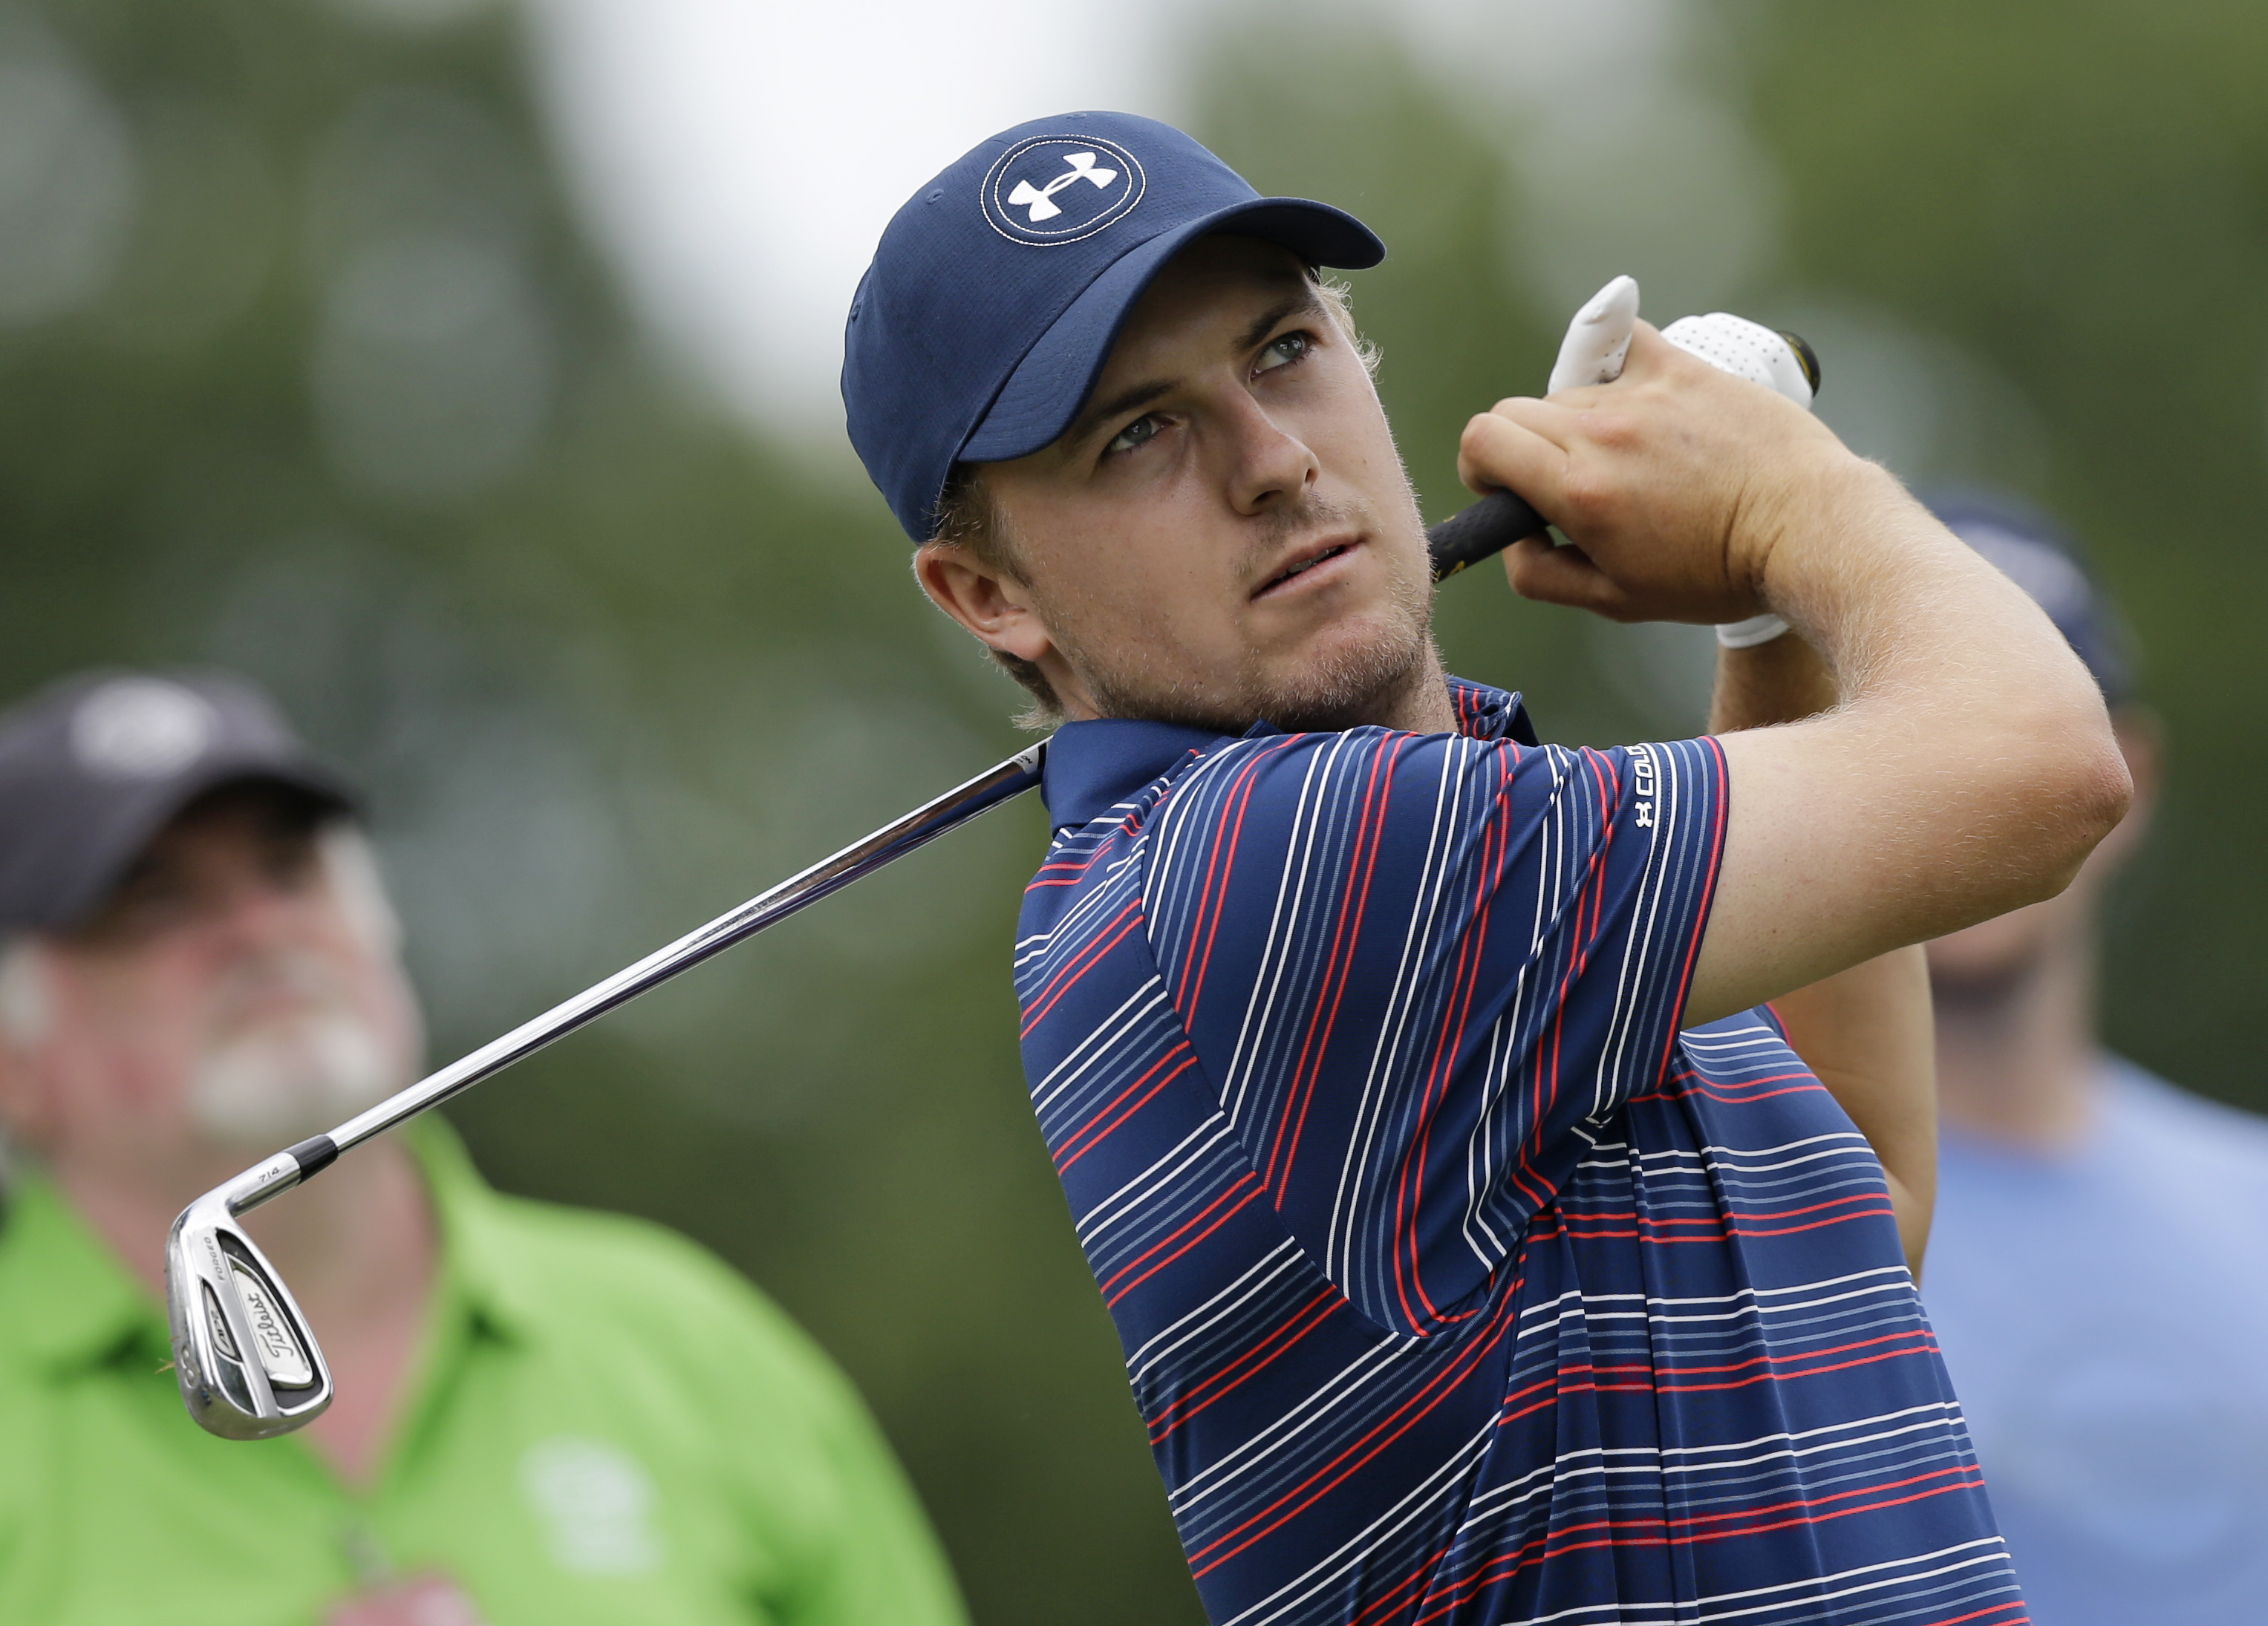 Jordan Spieth hits on the 12th hole during the practice round of the Bridgestone Invitational golf tournament at Firestone Country Club, Wednesday, June 29, 2016, in Akron, Ohio. (AP Photo/Tony Dejak)